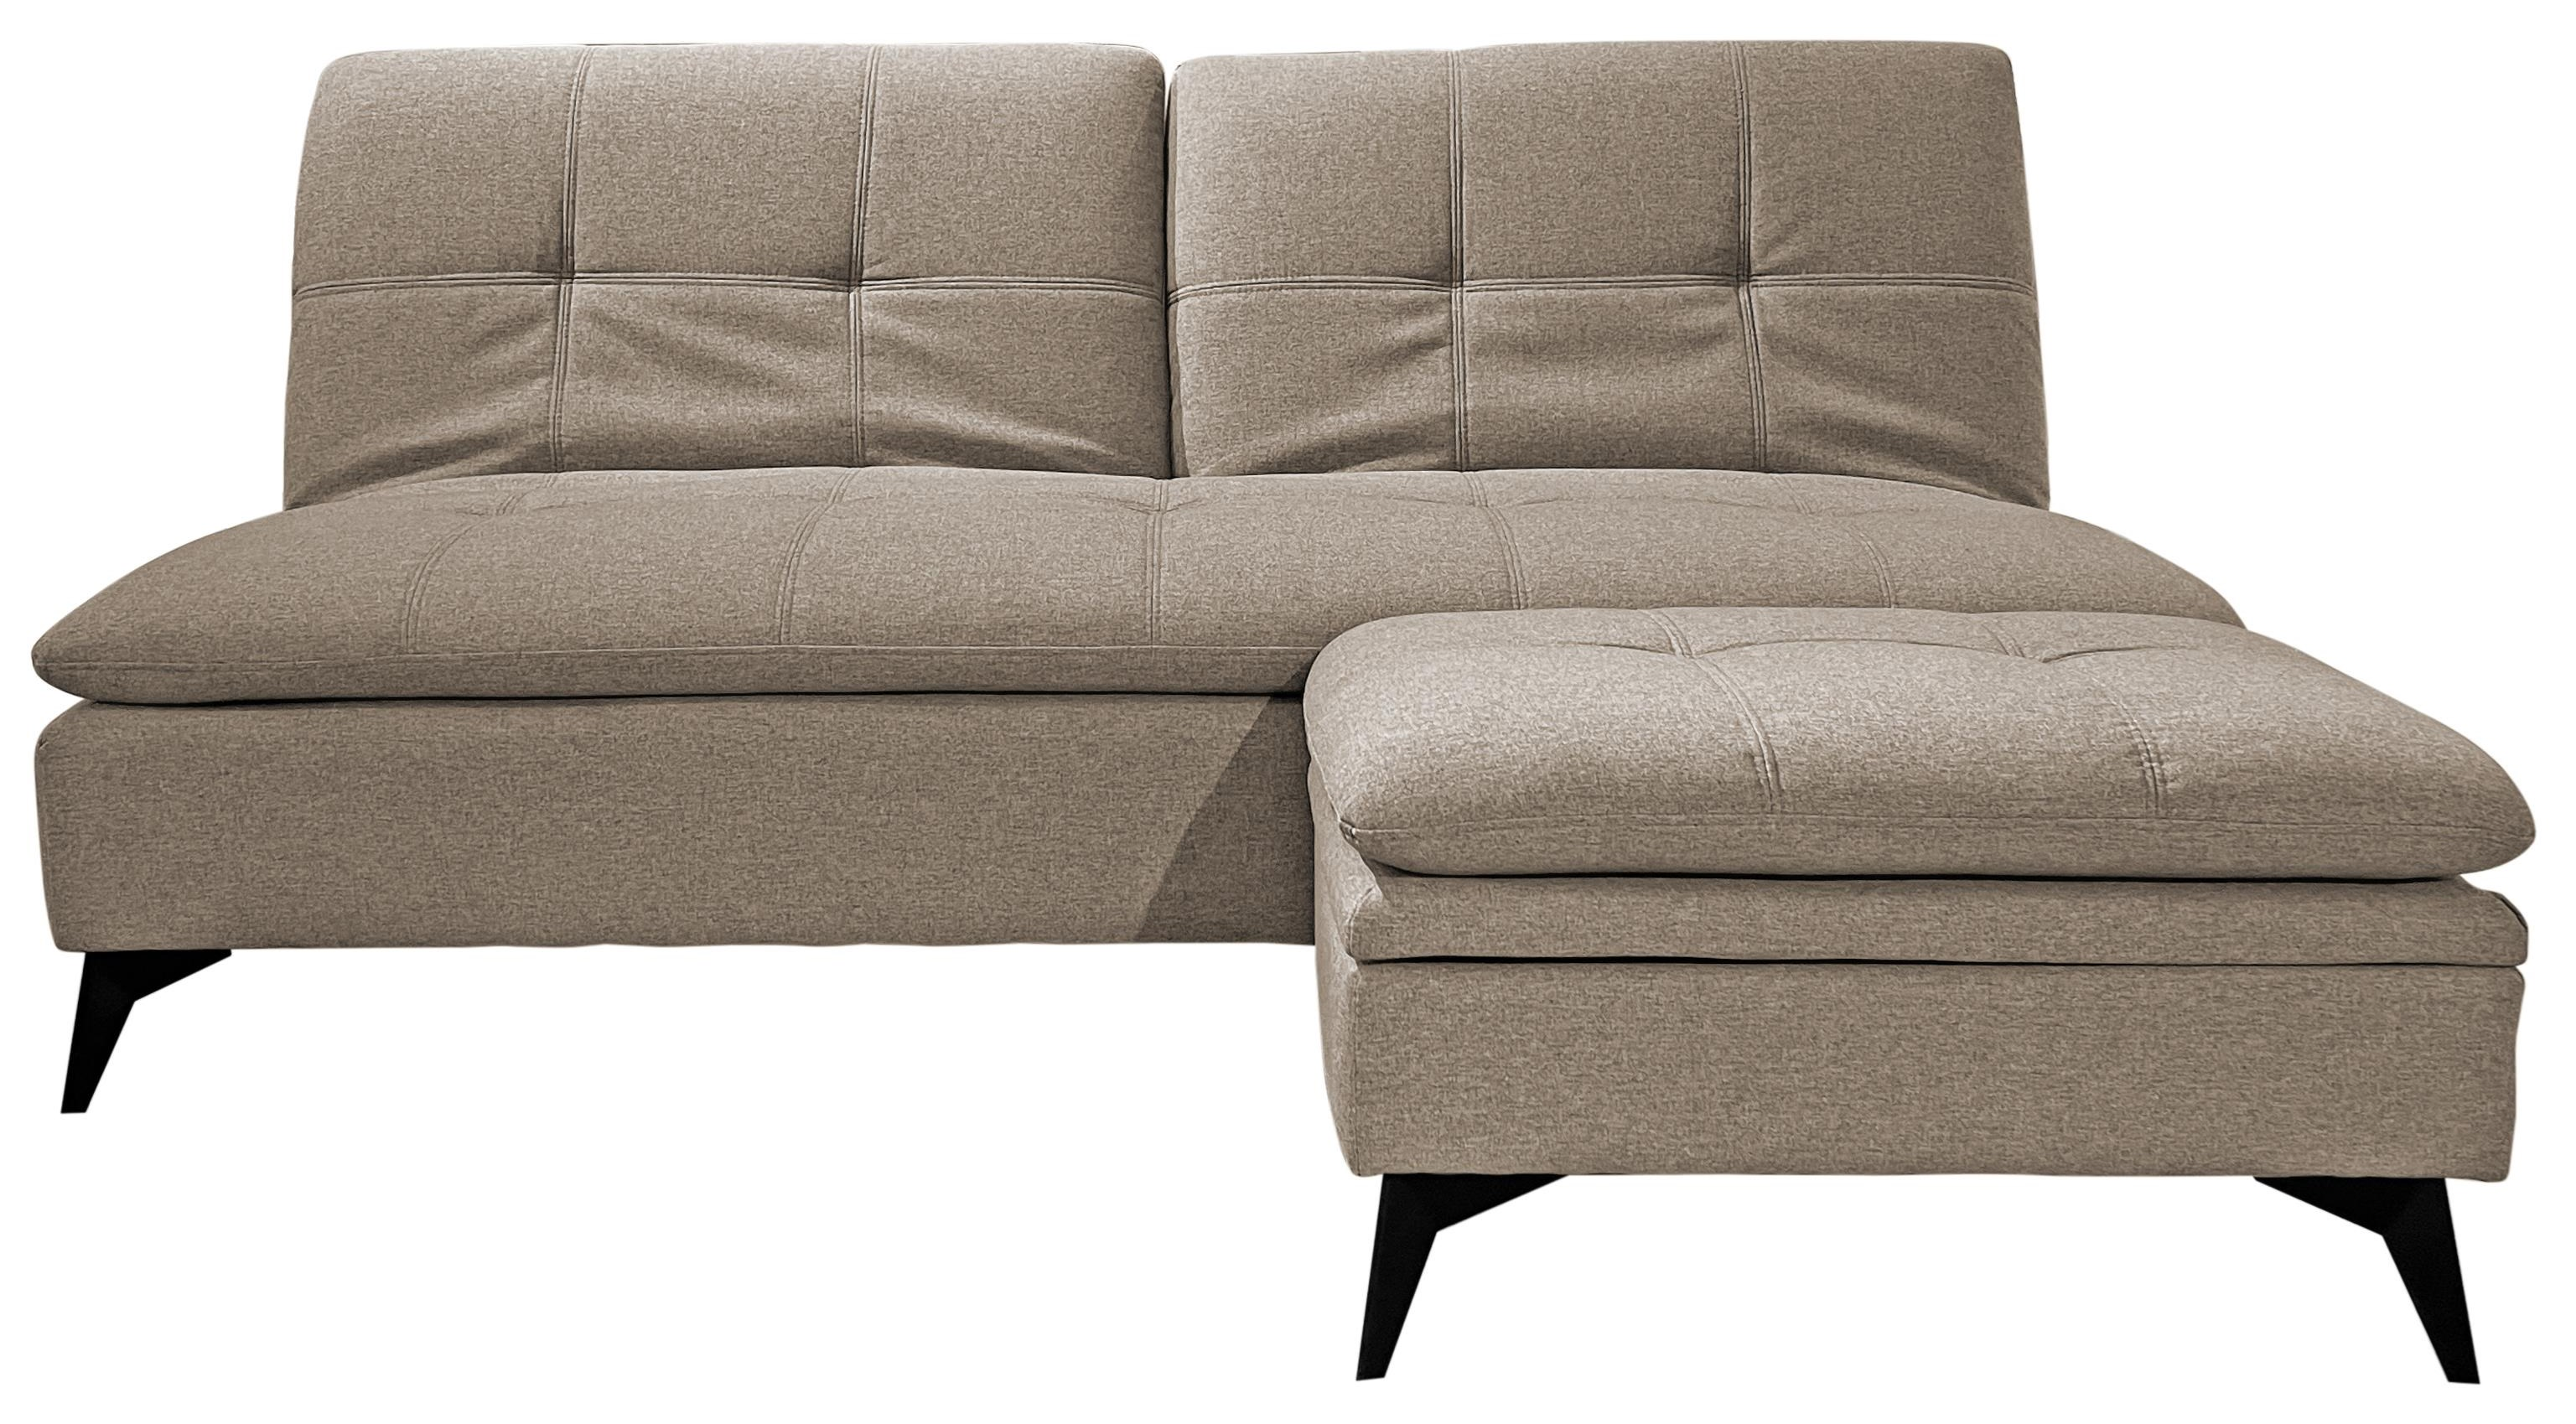 Sedona Convertible Sofa with Storage Ottoman by Sealy Sofa Convertibles at Red Knot